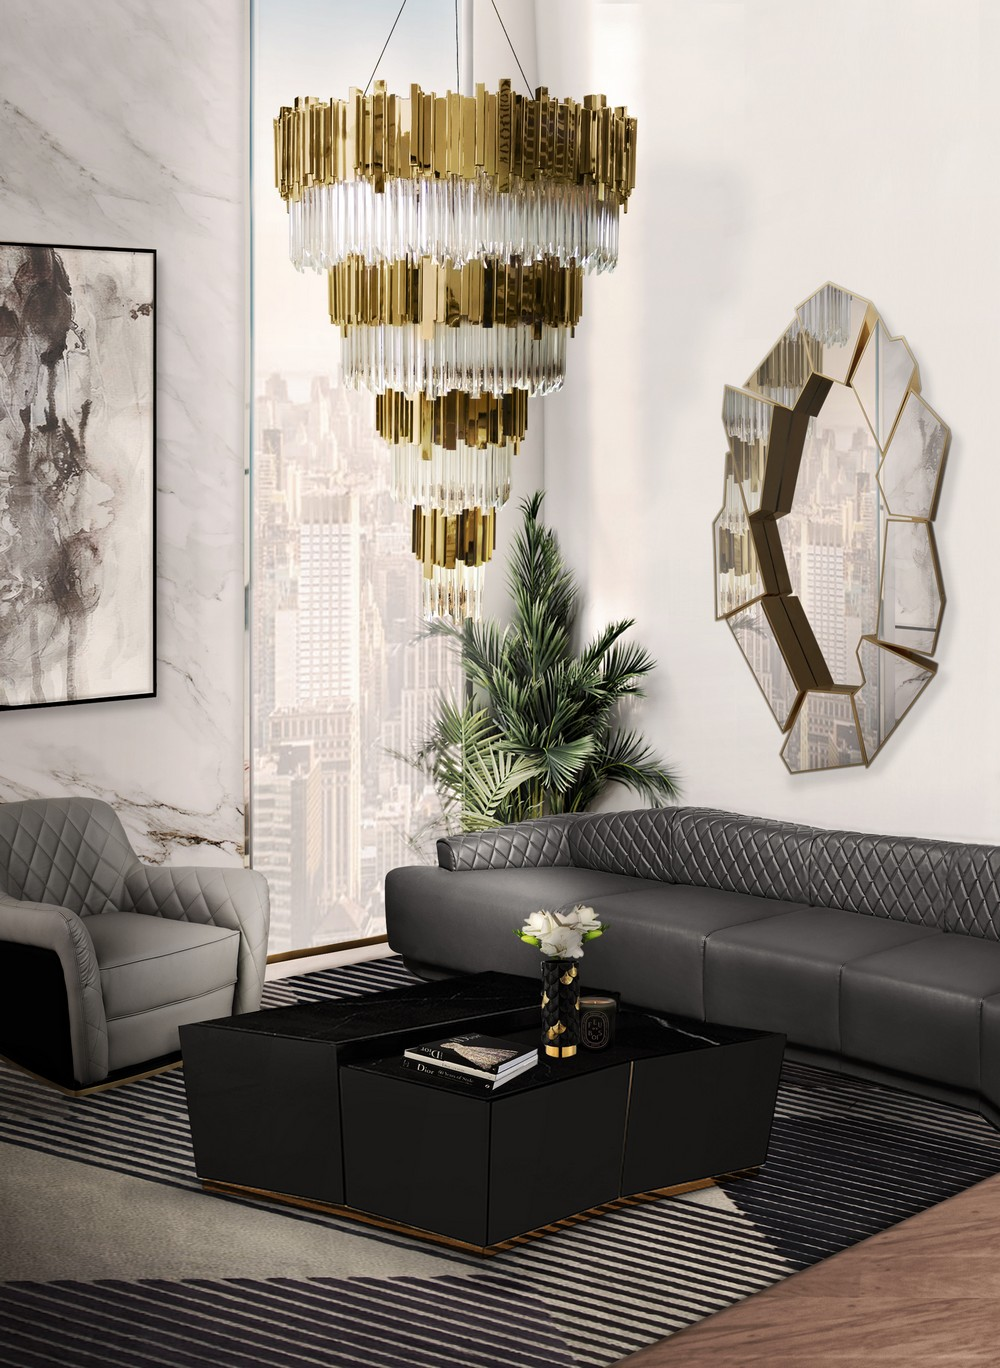 Statement Lighting Make Your Living Room the Classiet of Them All 2